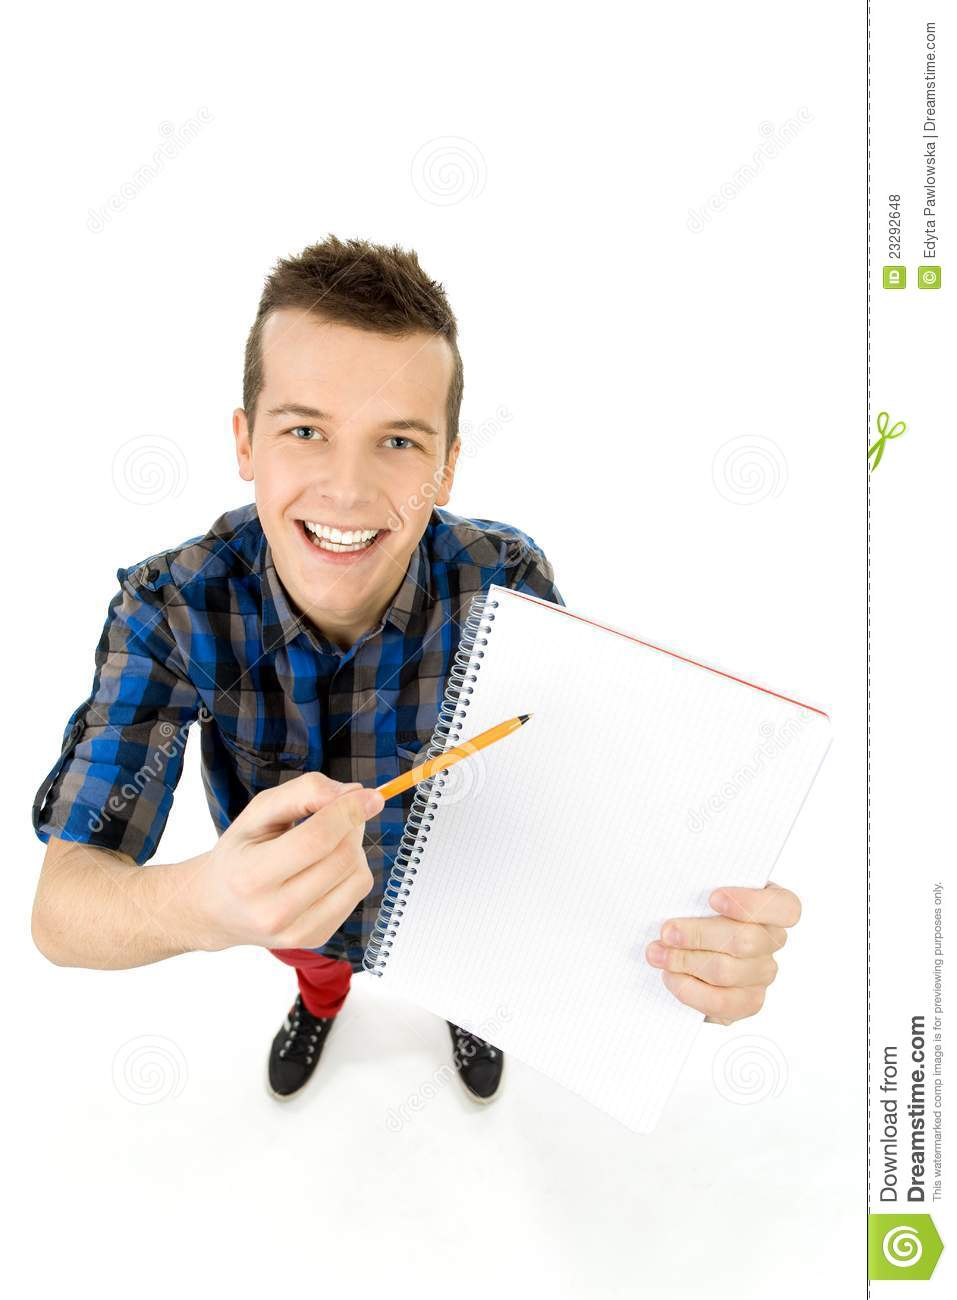 Student with workbook and pen